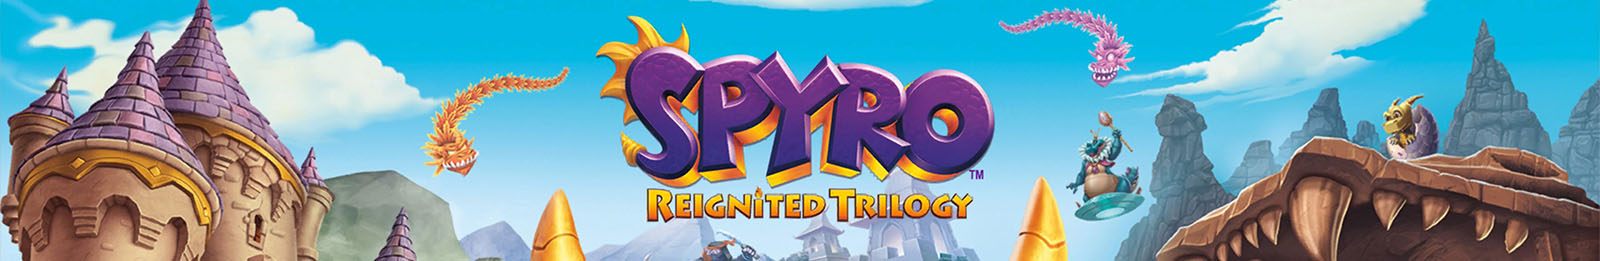 Spyro Reignated Trilogy